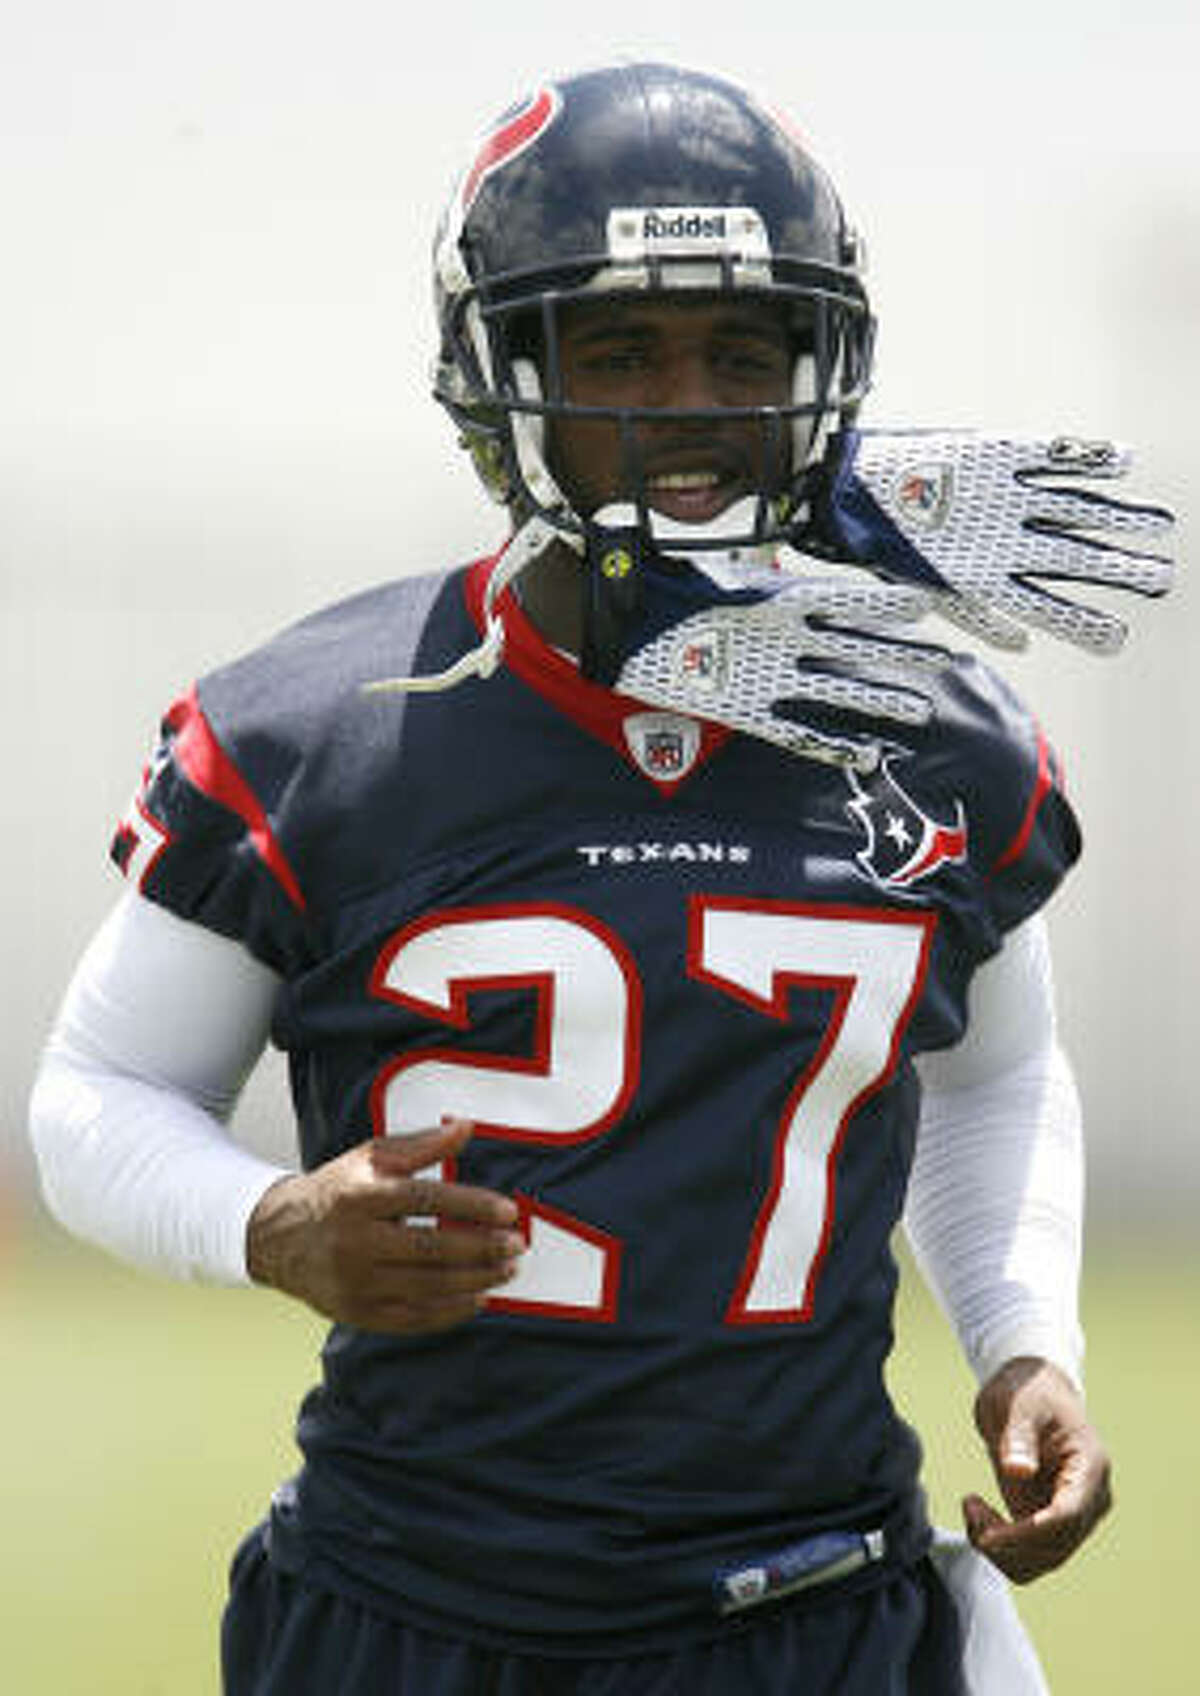 Texans corner back Matterral Richardson runs with his gloves attached to his helmet during the afternoon practice session.